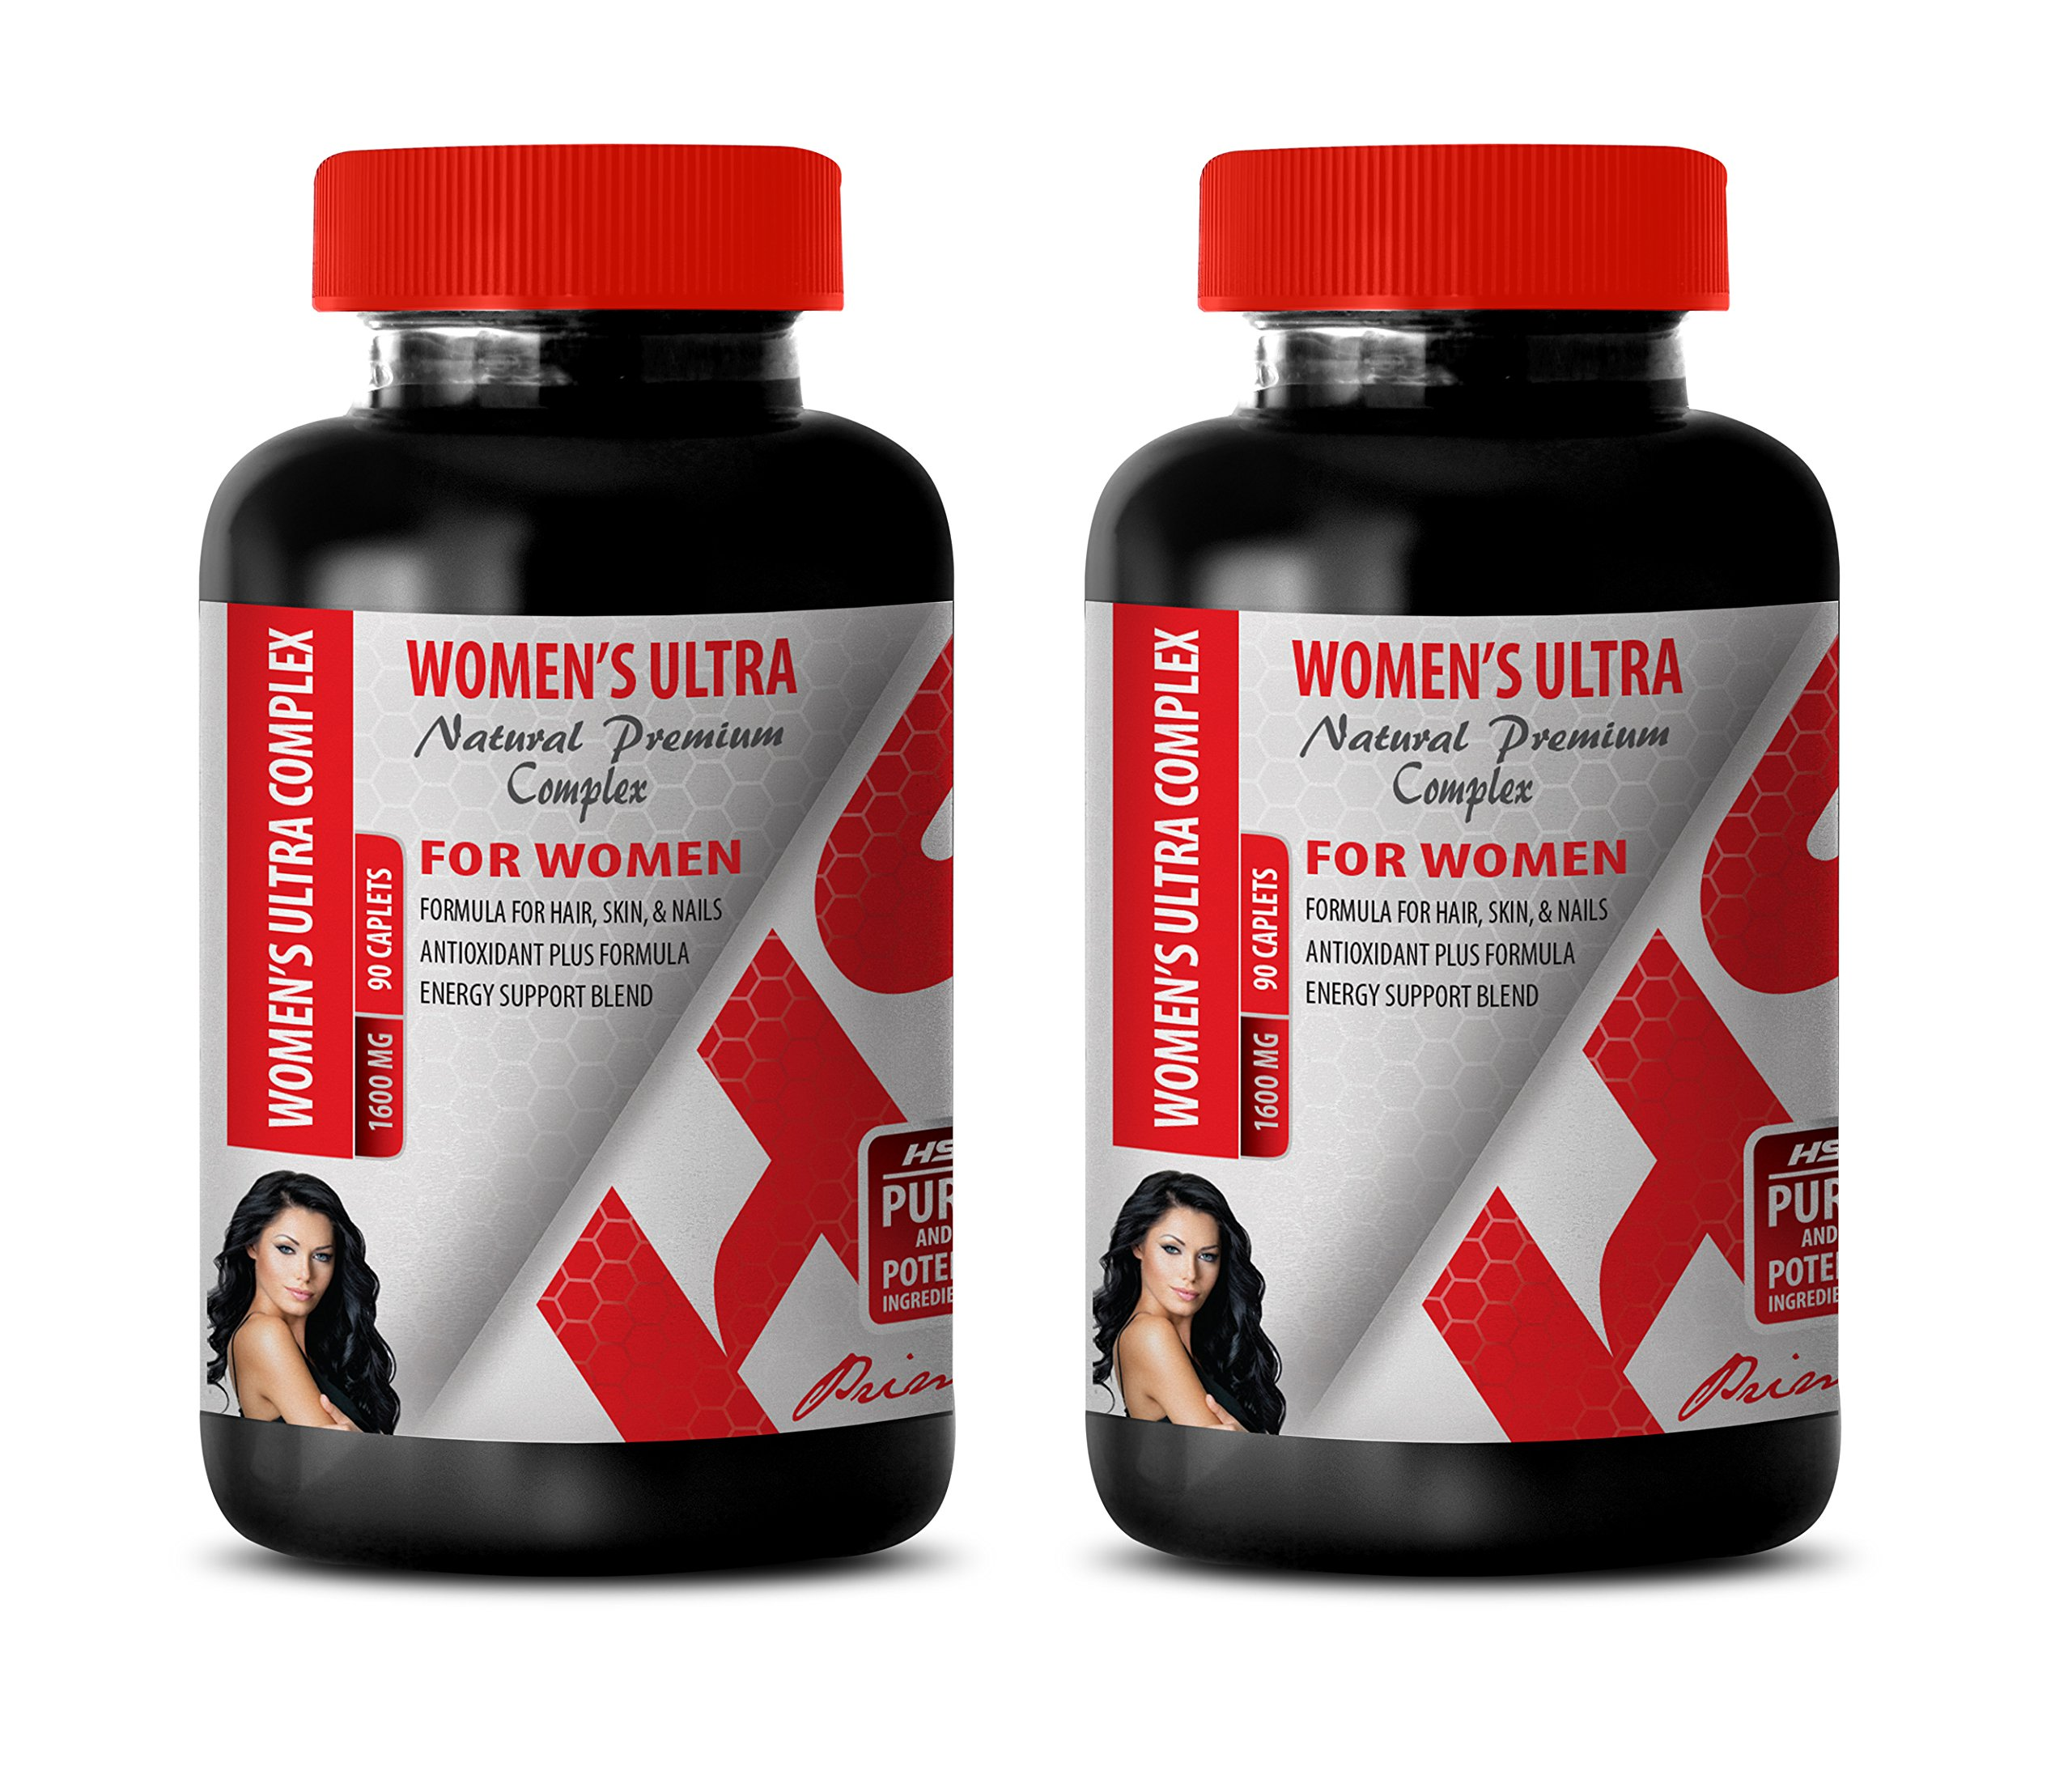 Energy Booster for Women - Women's Ultra Natural Premium Complex 1600 mg - Multivitamin for Women with Collagen - 2 Bottles 180 Caplets